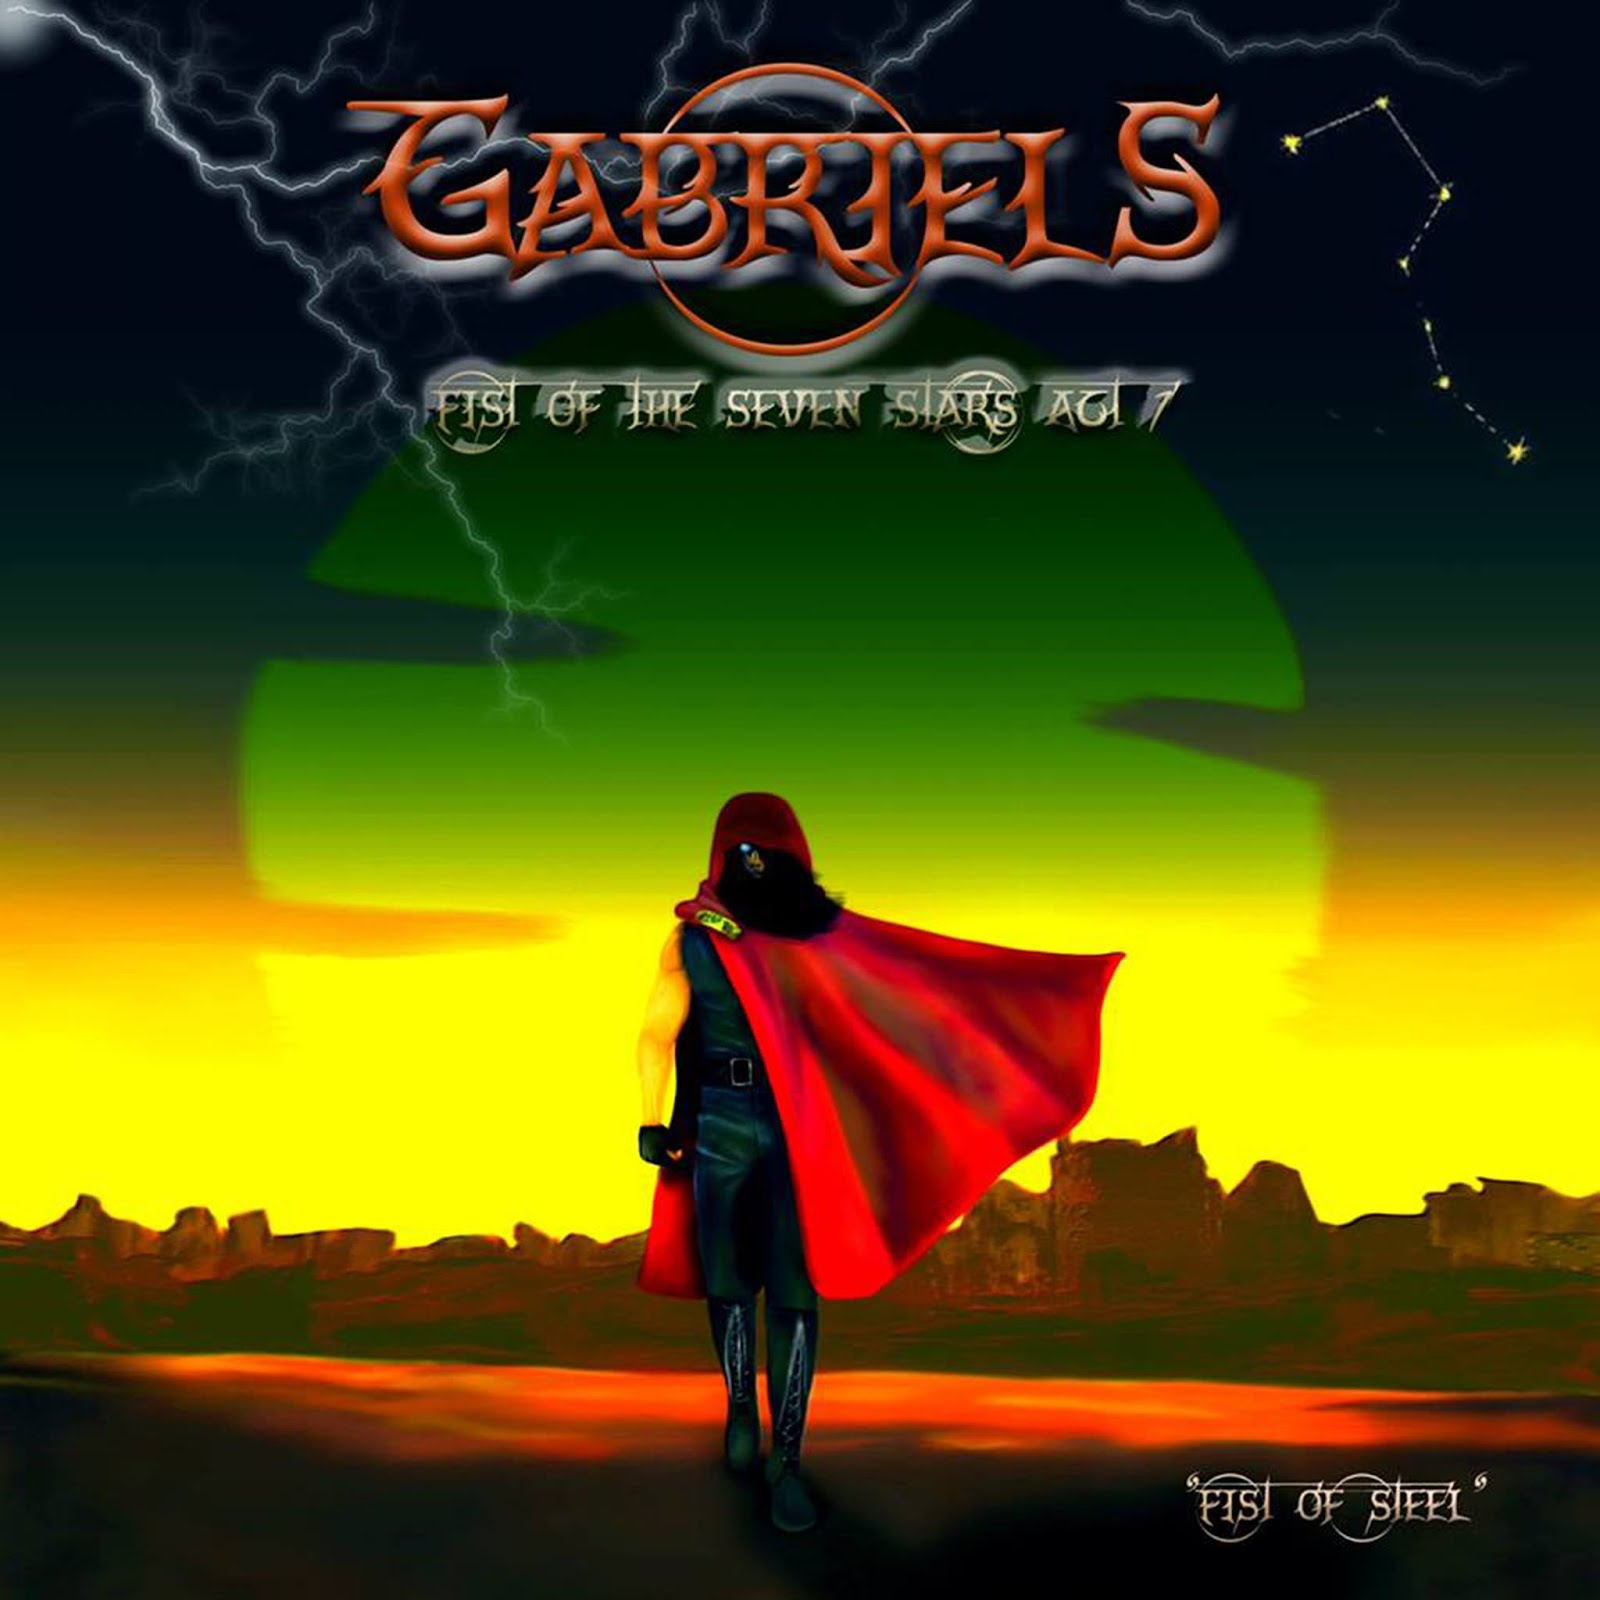 Gabriels - Fist Of The Seven Stars Act 1: Fist Of Steel